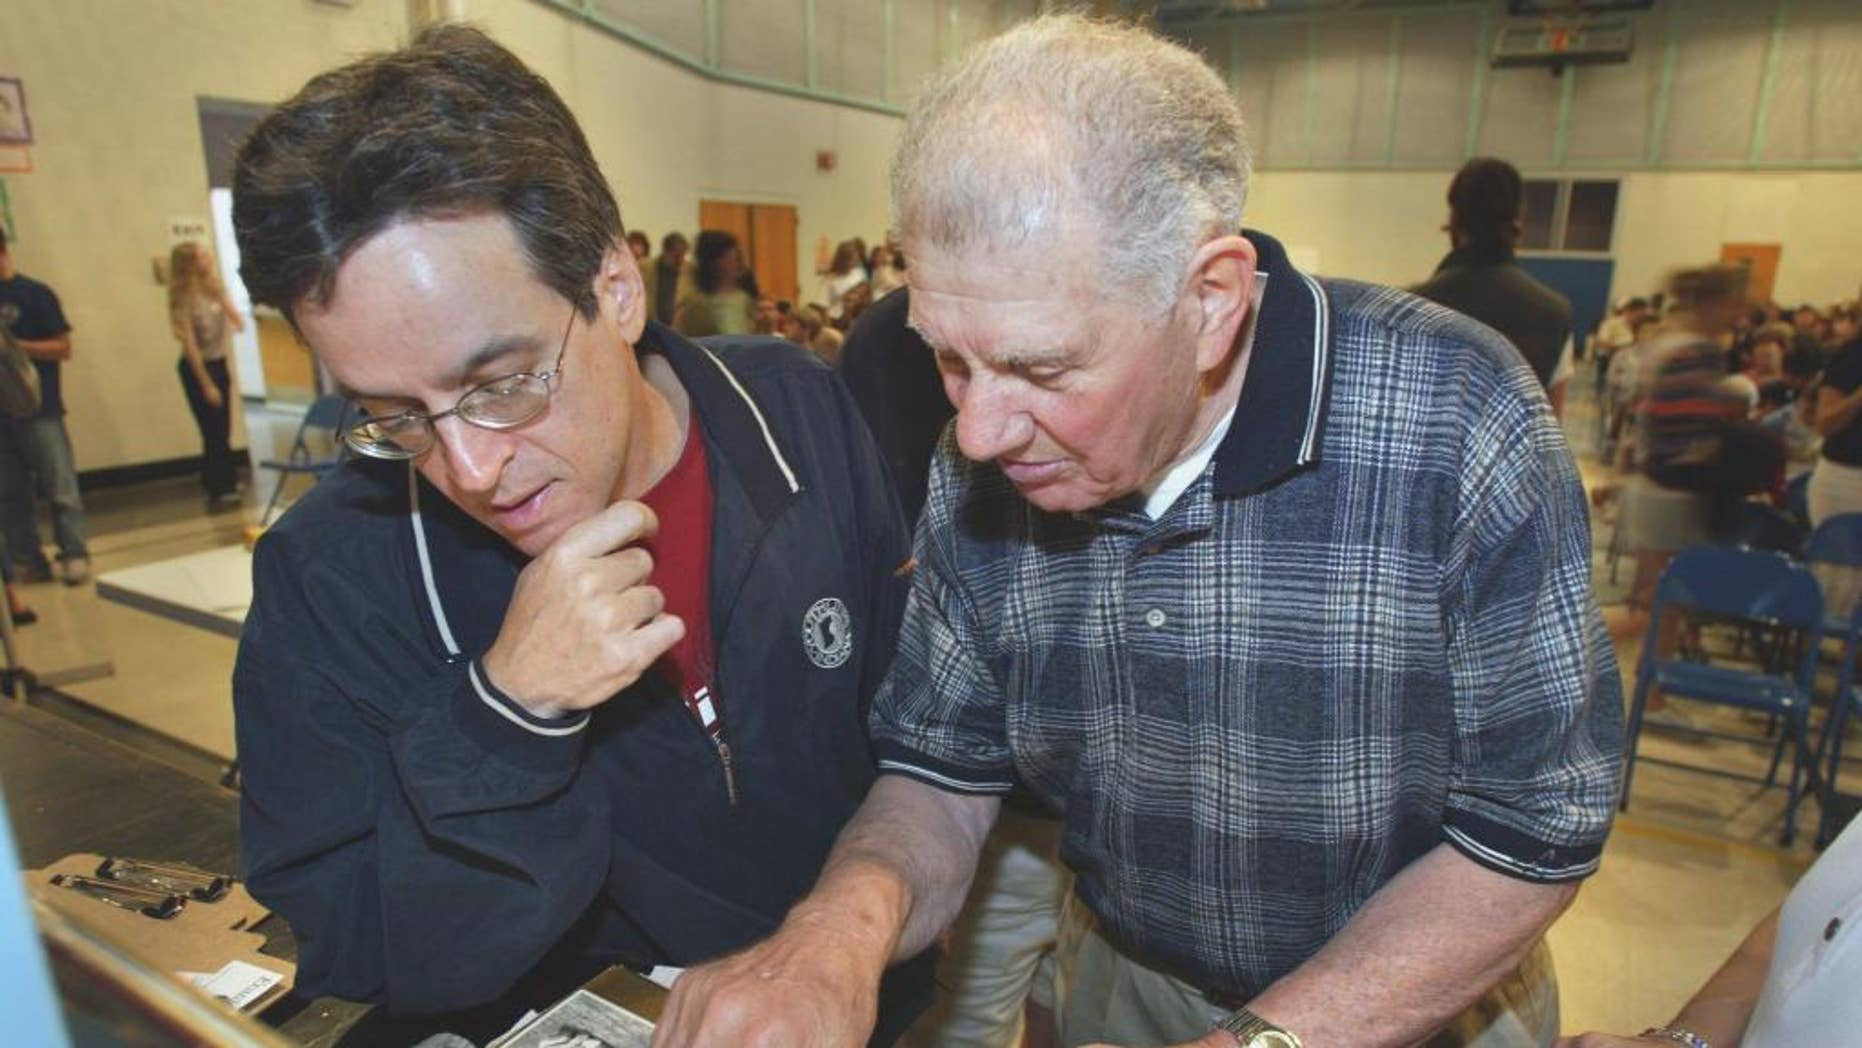 """FILE - In this May 31, 2003, file photo, screenwriter Angelo Pizzo, left, looks at some old photos with former United States soccer player Frank Borghi at Shaw School during a casting call for the movie """"The Game of Their Lives,"""" in St. Louis.  Borghi, the goalkeeper in the United States' 1-0 upset victory over England in the 1950 World Cup, died Monday, Feb. 2, 2015, according to the St. Louis Soccer Hall of Fame. He was 89. (AP Photo/St. Louis Post-Dispatch, Teak Phillips, File)  EDWARDSVILLE INTELLIGENCER OUT; THE ALTON TELEGRAPH OUT"""